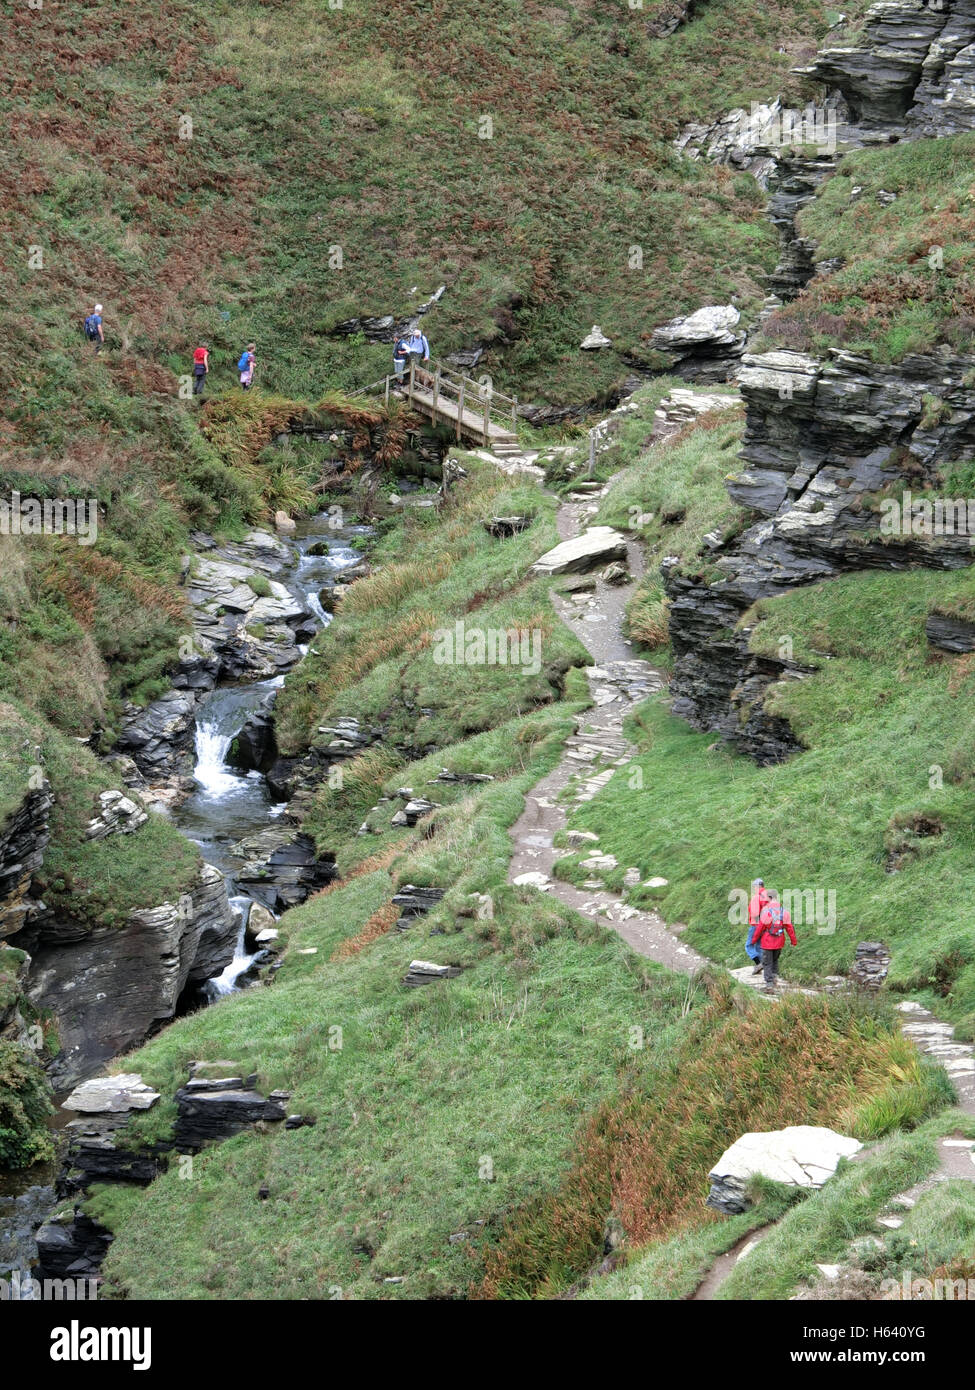 Walkers at Rocky Valley, St Nectan's Glen, Cornwall, England, UK - Stock Image